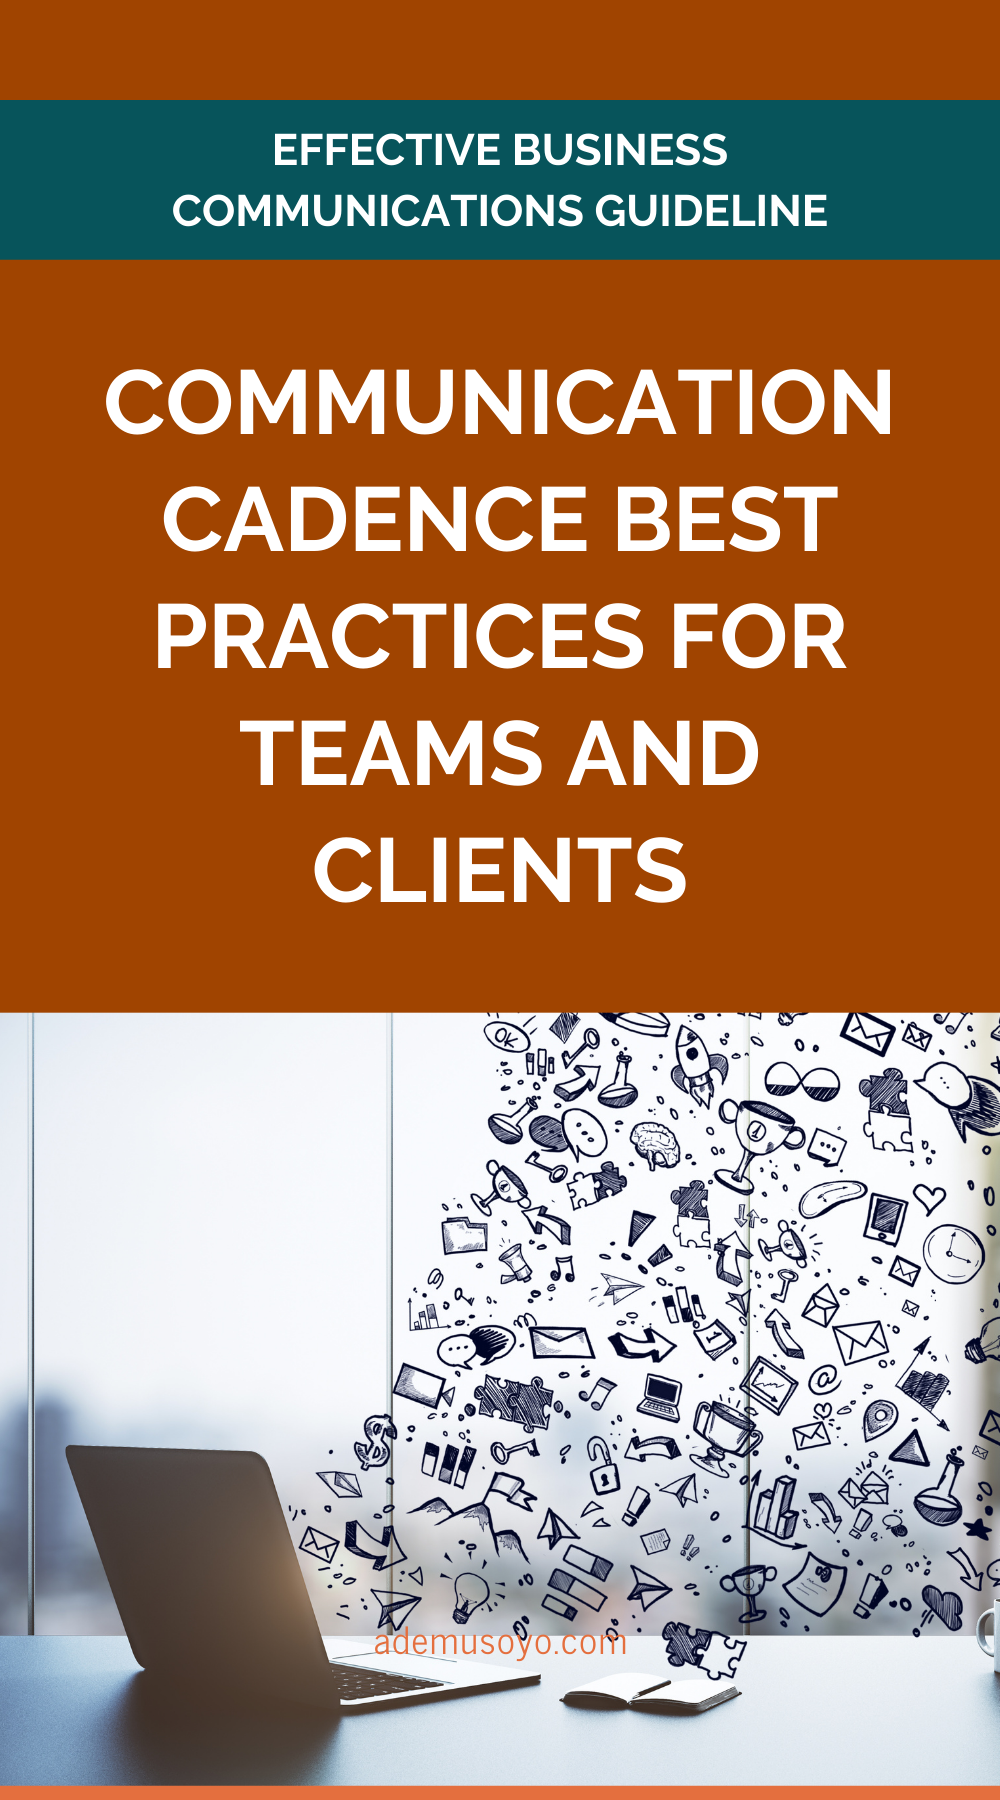 3 Best Practices For Communication Cadence For Teams and Clients